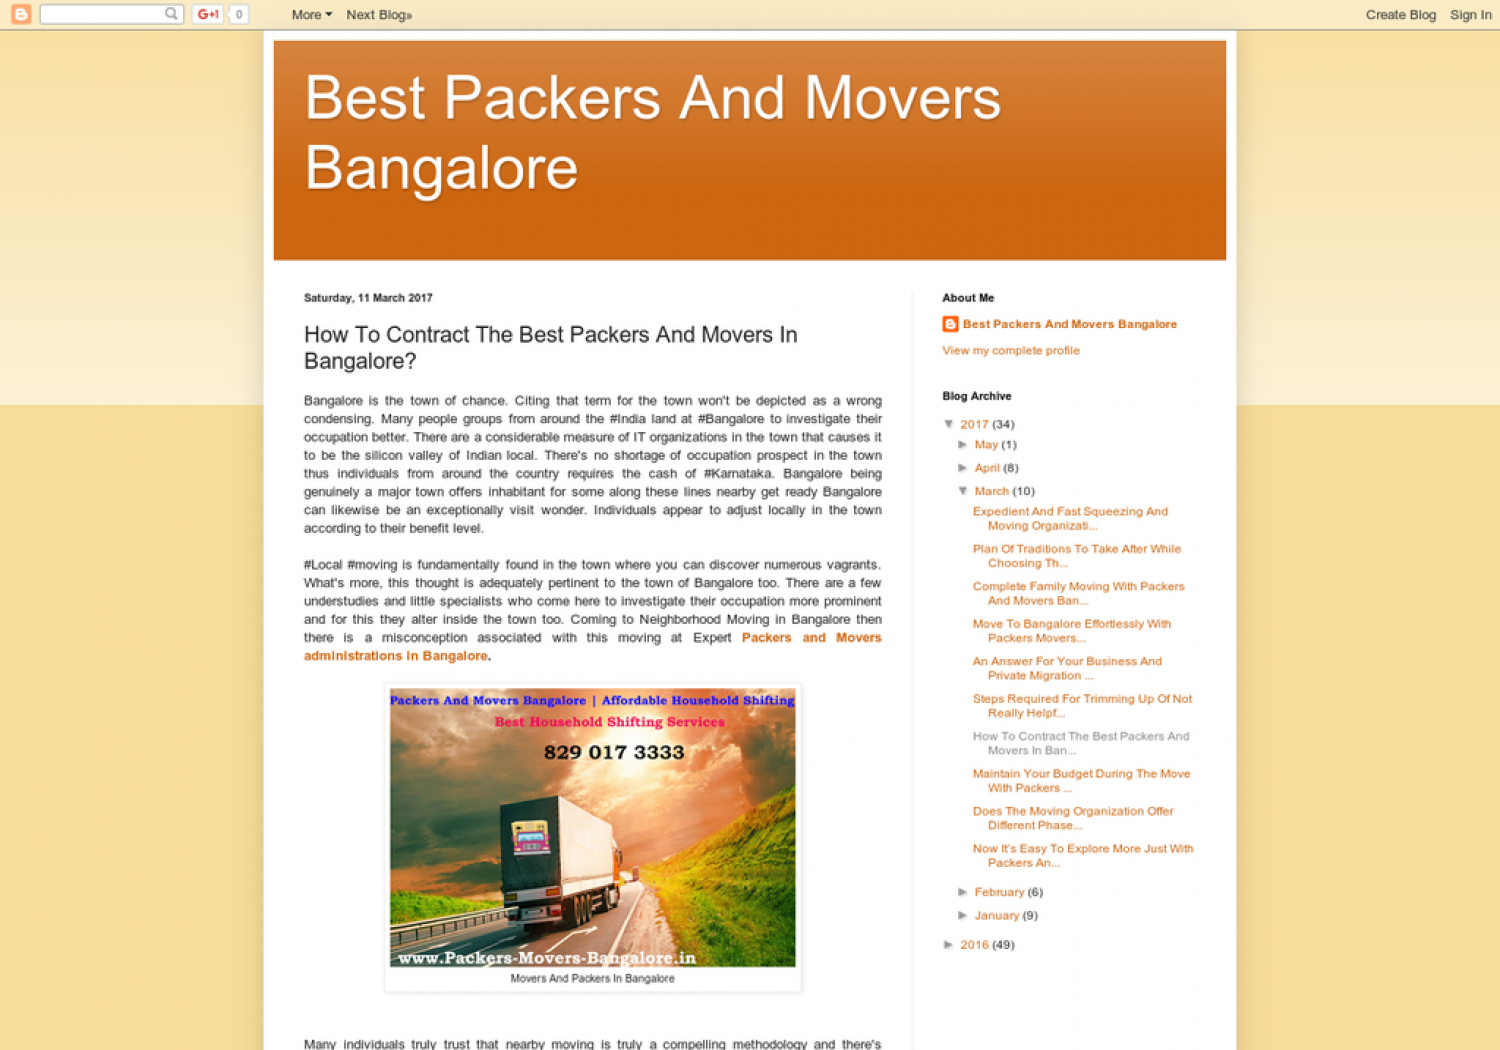 How To Contract The Best Packers And Movers In Bangalore? Infographic